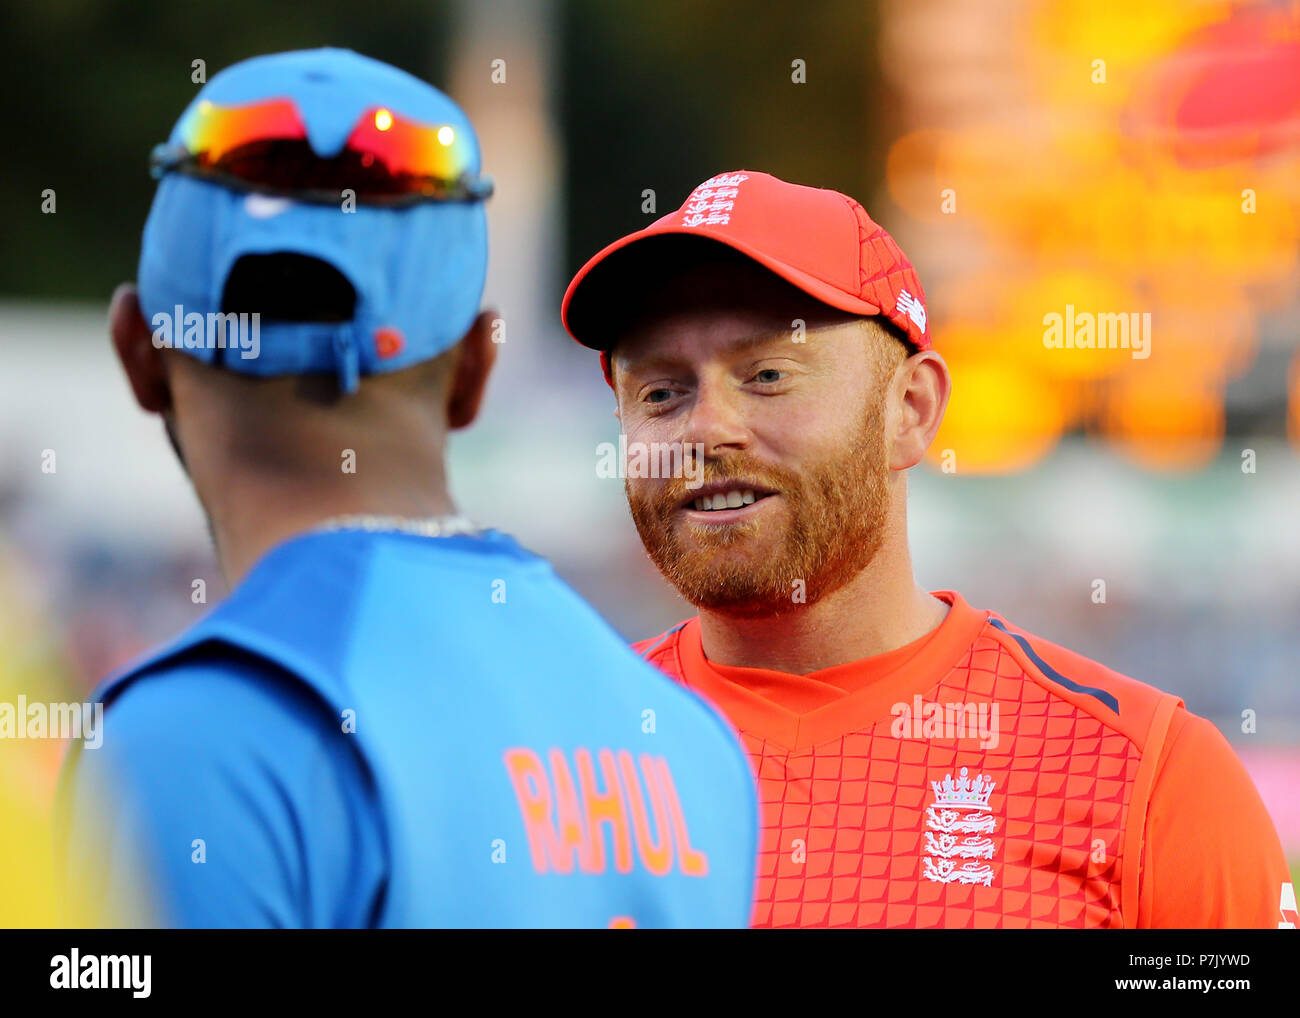 England's Jonny Bairstow talks with India's KL Rahul as they leave the field during the Vitality IT20 Series Match at The SSE SWALEC, Cardiff. - Stock Image